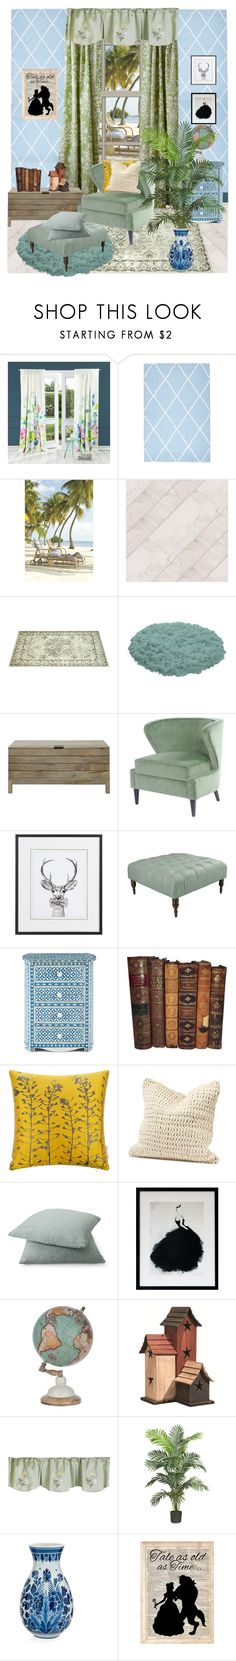 """""""Mist green is entering to mean effort, talent and courage."""" by hiroko-eirai ❤ liked on Polyvore featuring interior, interiors, interior design, home, home decor, interior decorating, Bluebellgray, Laura Ashley, John Lewis and Skyline"""